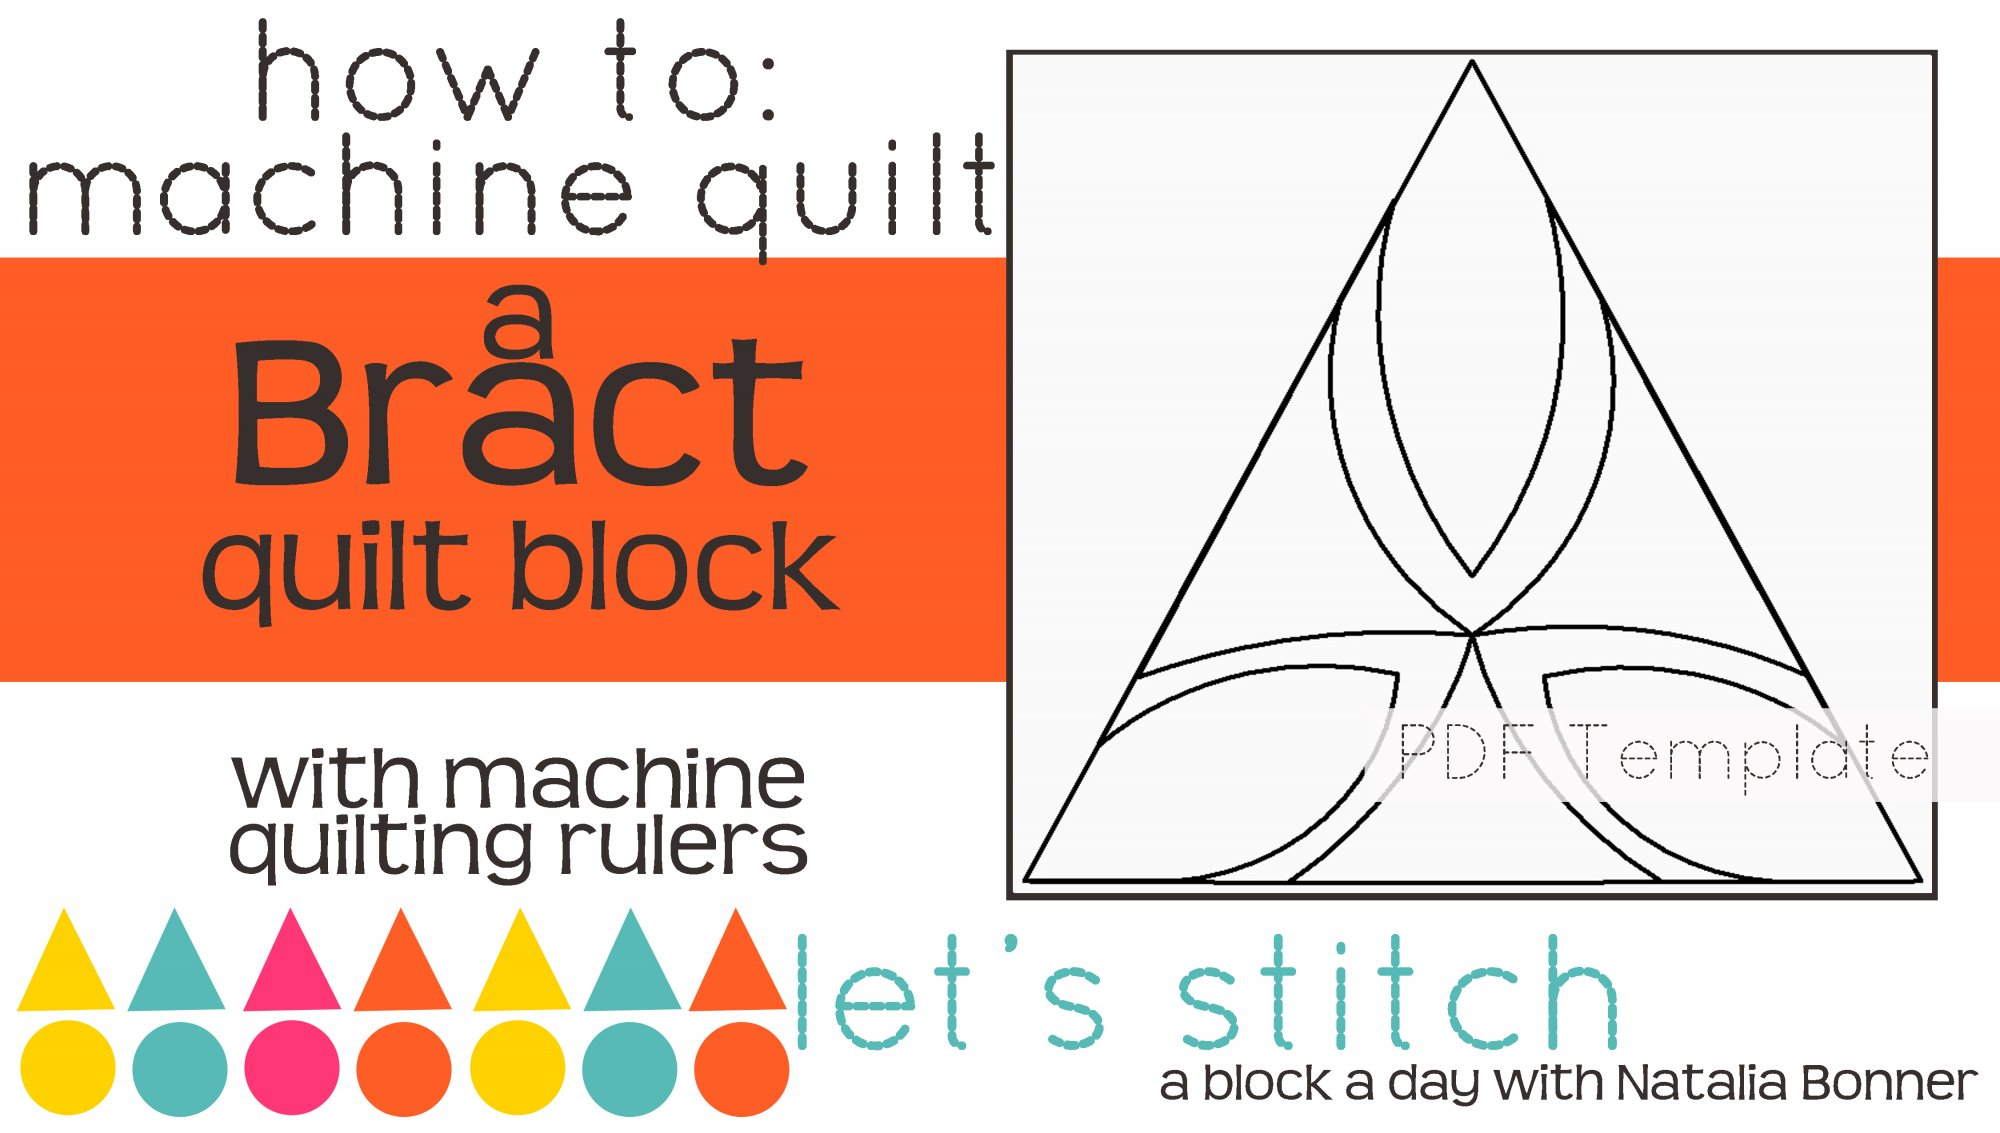 Let's Stitch - A Block a Day With Natalia Bonner - PDF - Bract